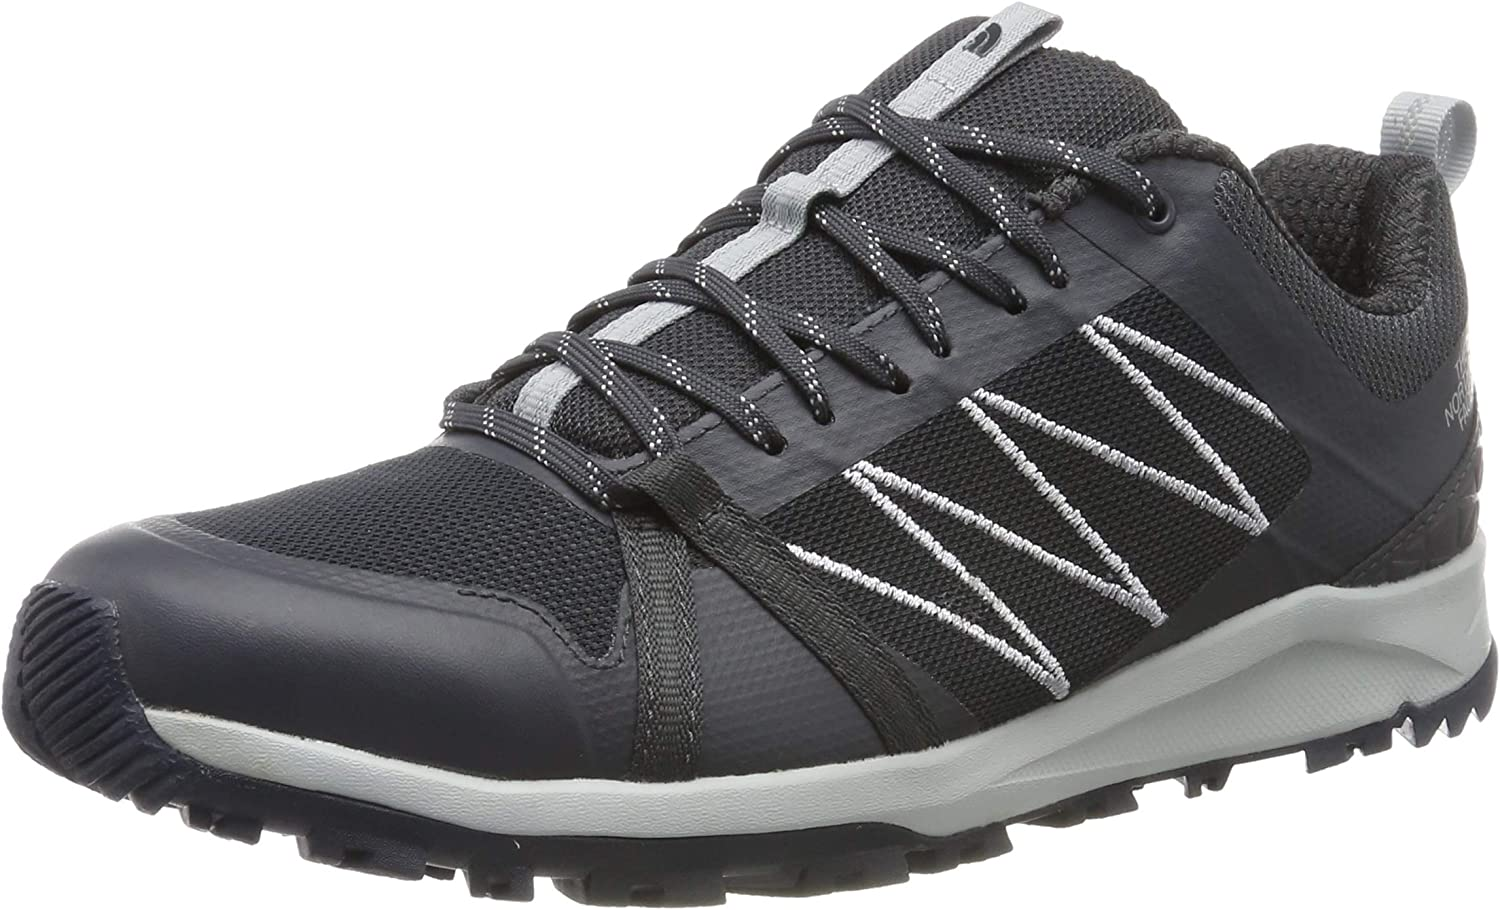 THE NORTH FACE Men's M Litewave Fastpack Ii Low Rise Hiking Boots